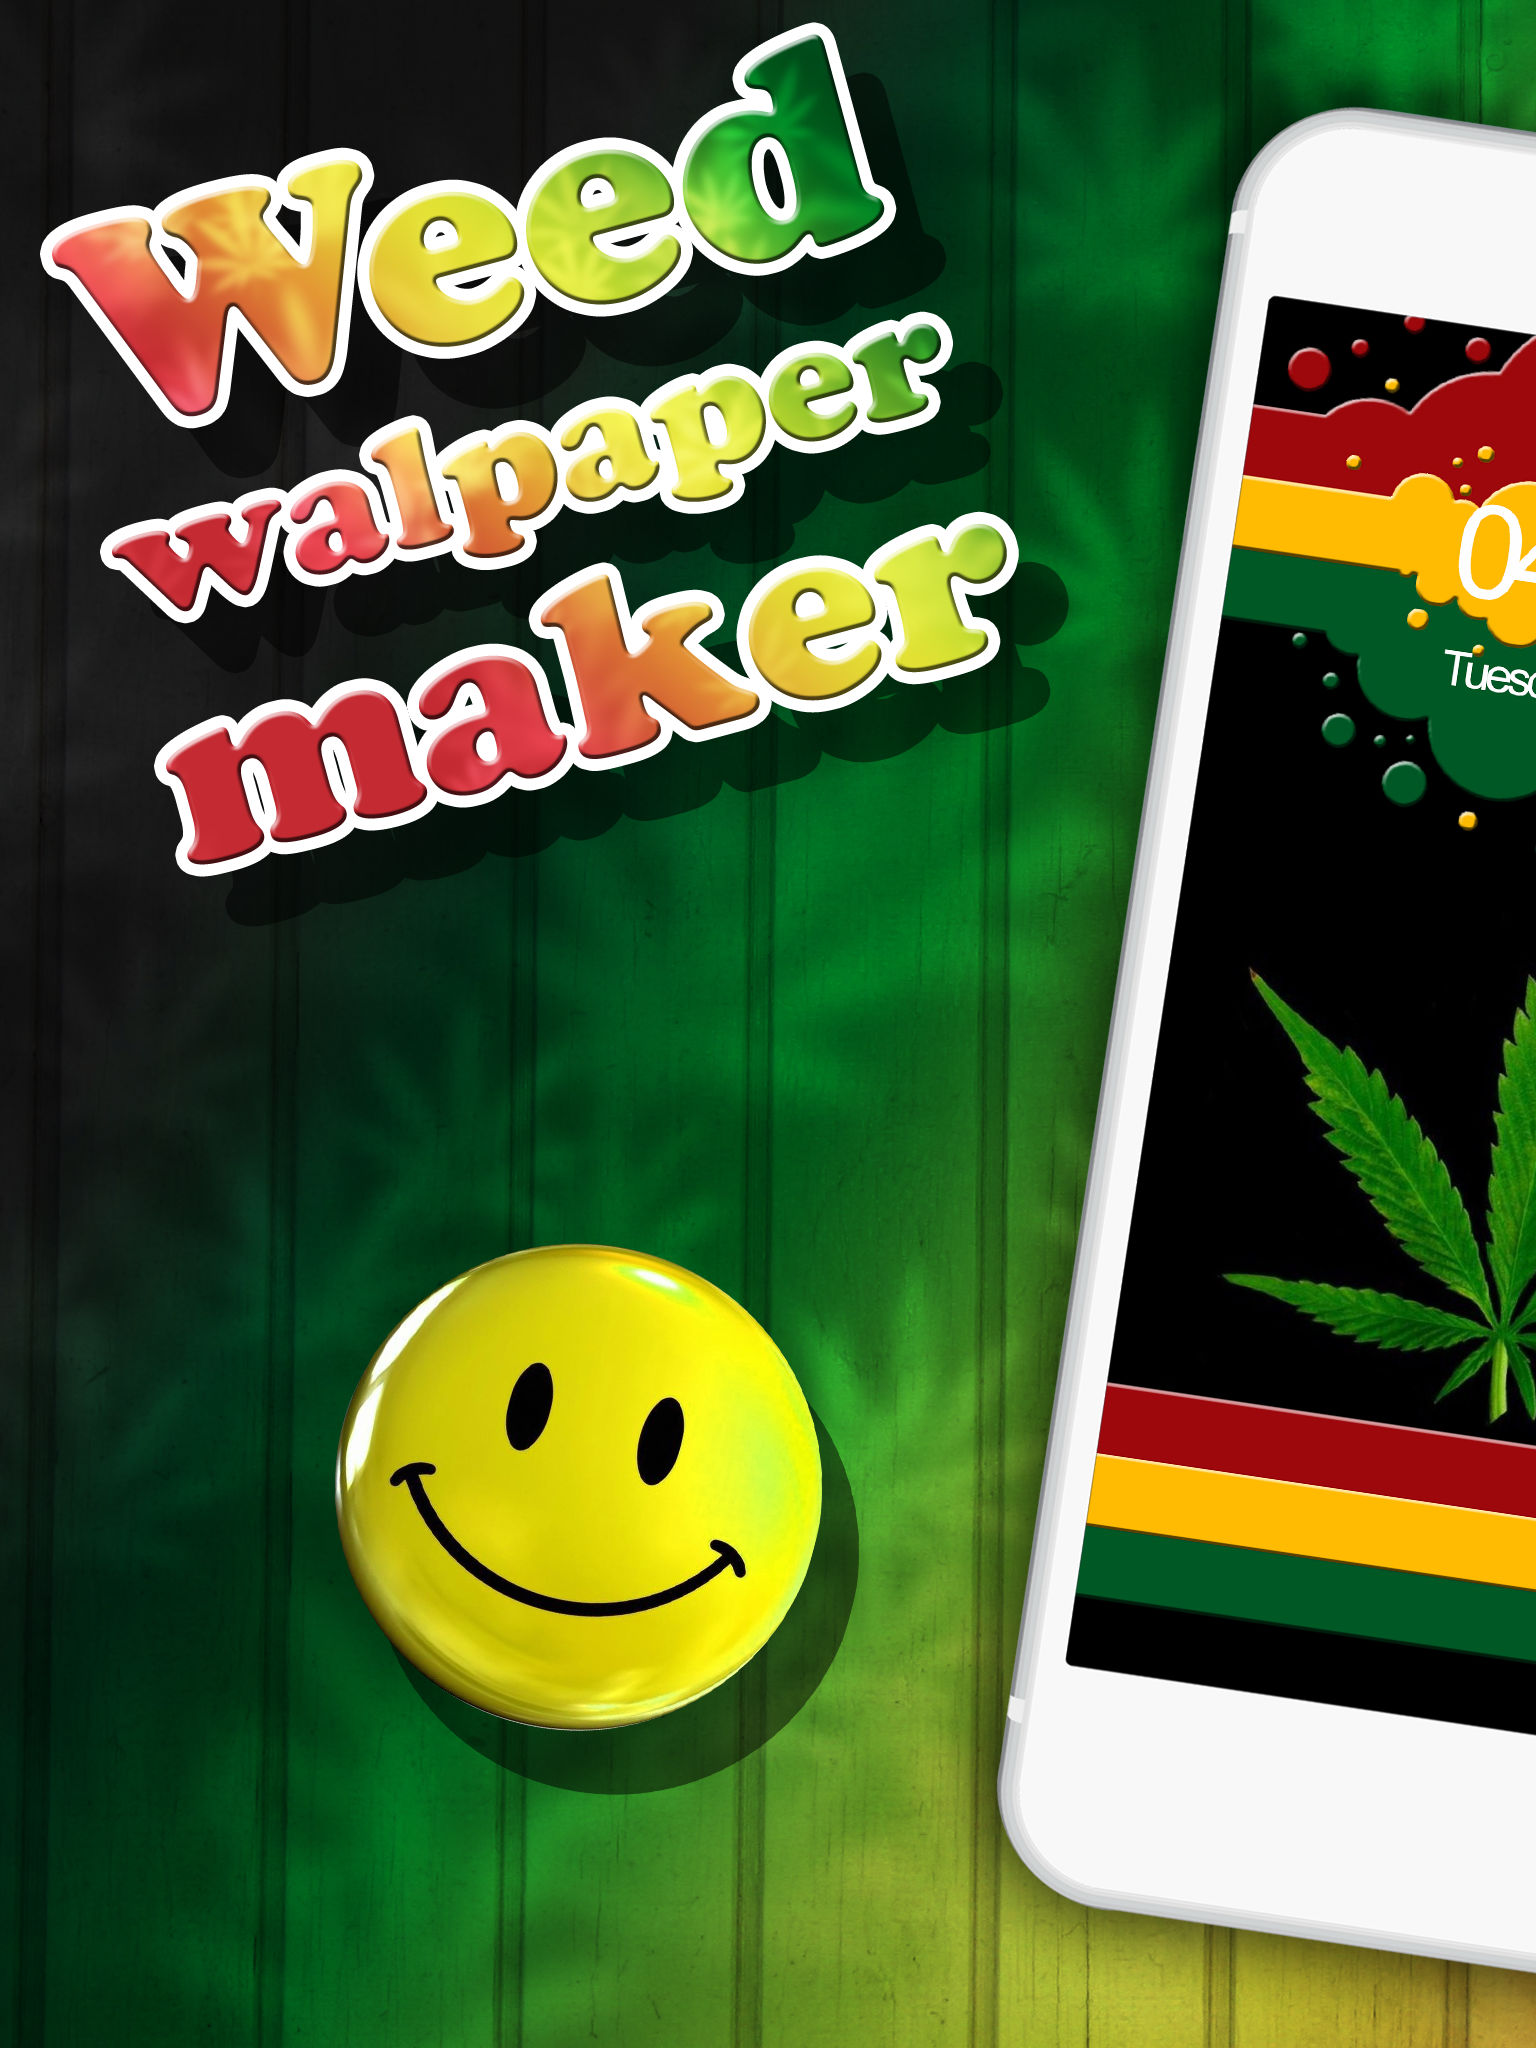 weed wallpaper maker with free backgrounds and ganja lock screen pictures is waiting for you pick any of the weed images and stay forever young